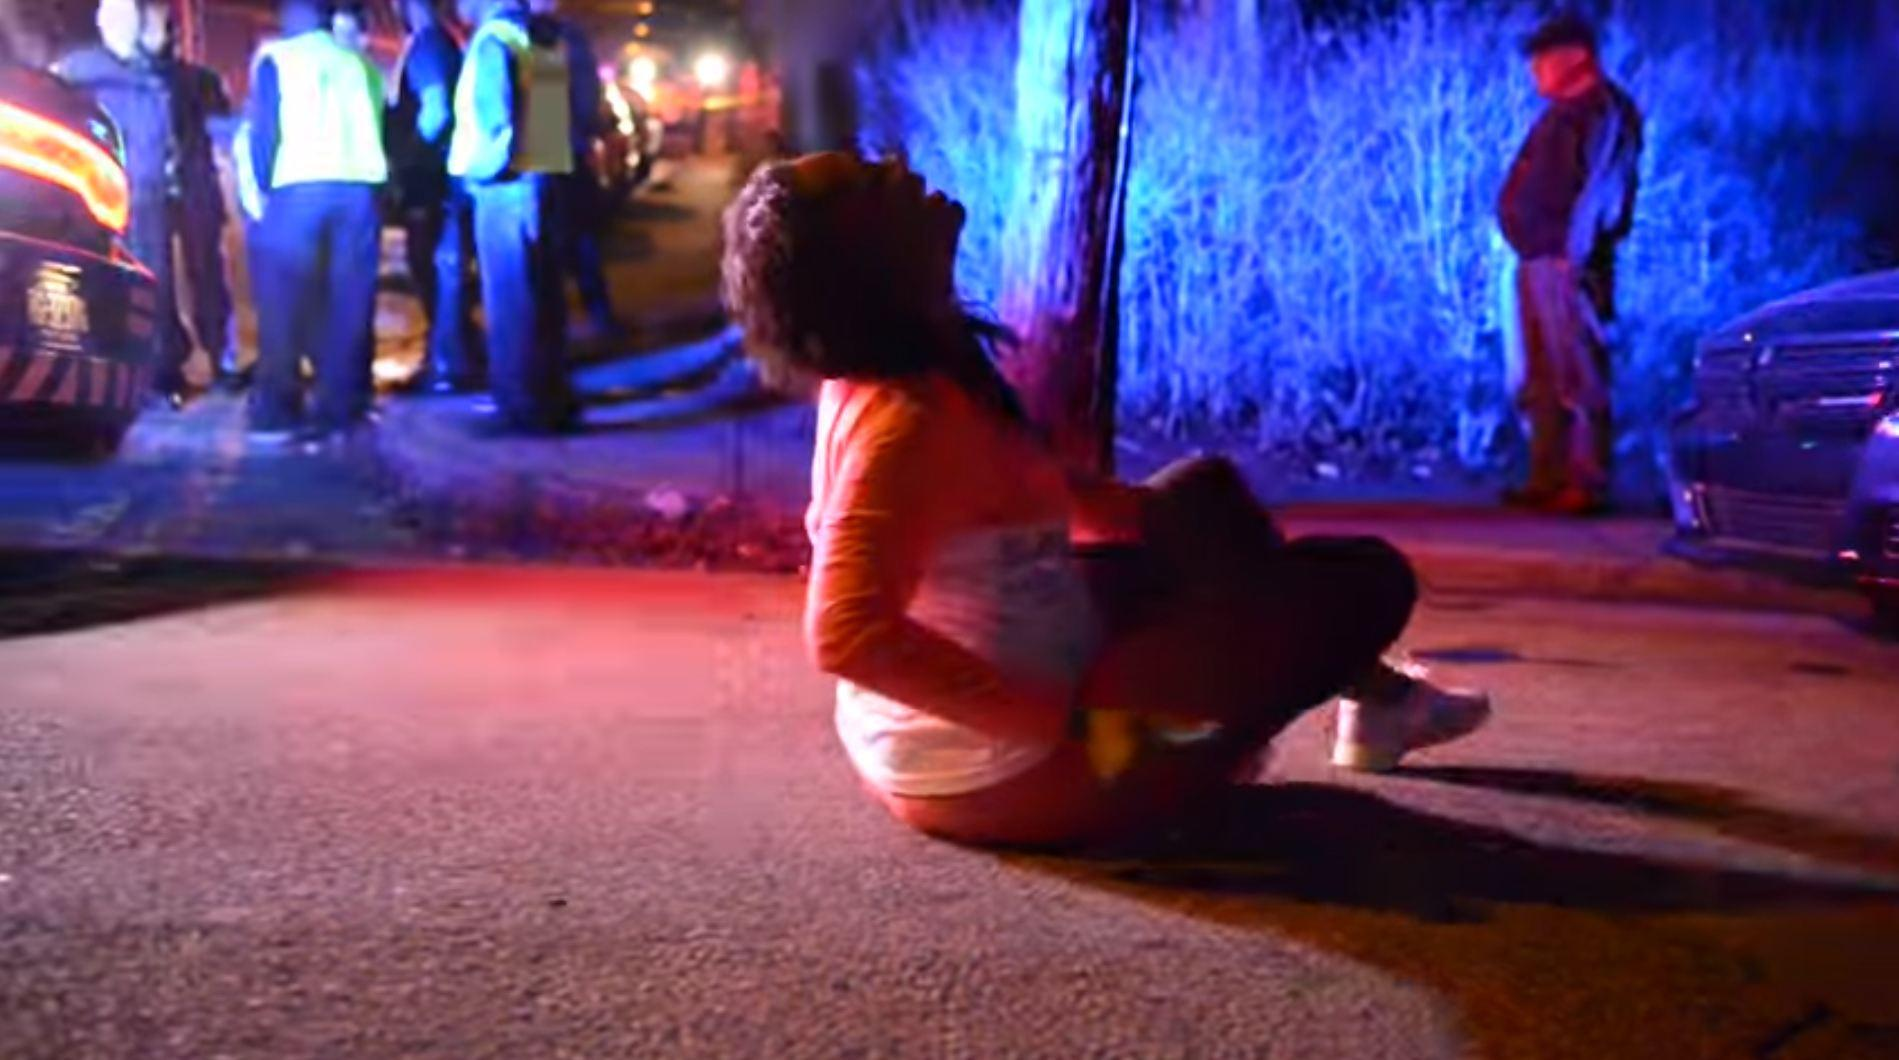 A Woman Collapses In Grief Still From Video Taken At Deadly Shooting View Slideshow 6 Of 7